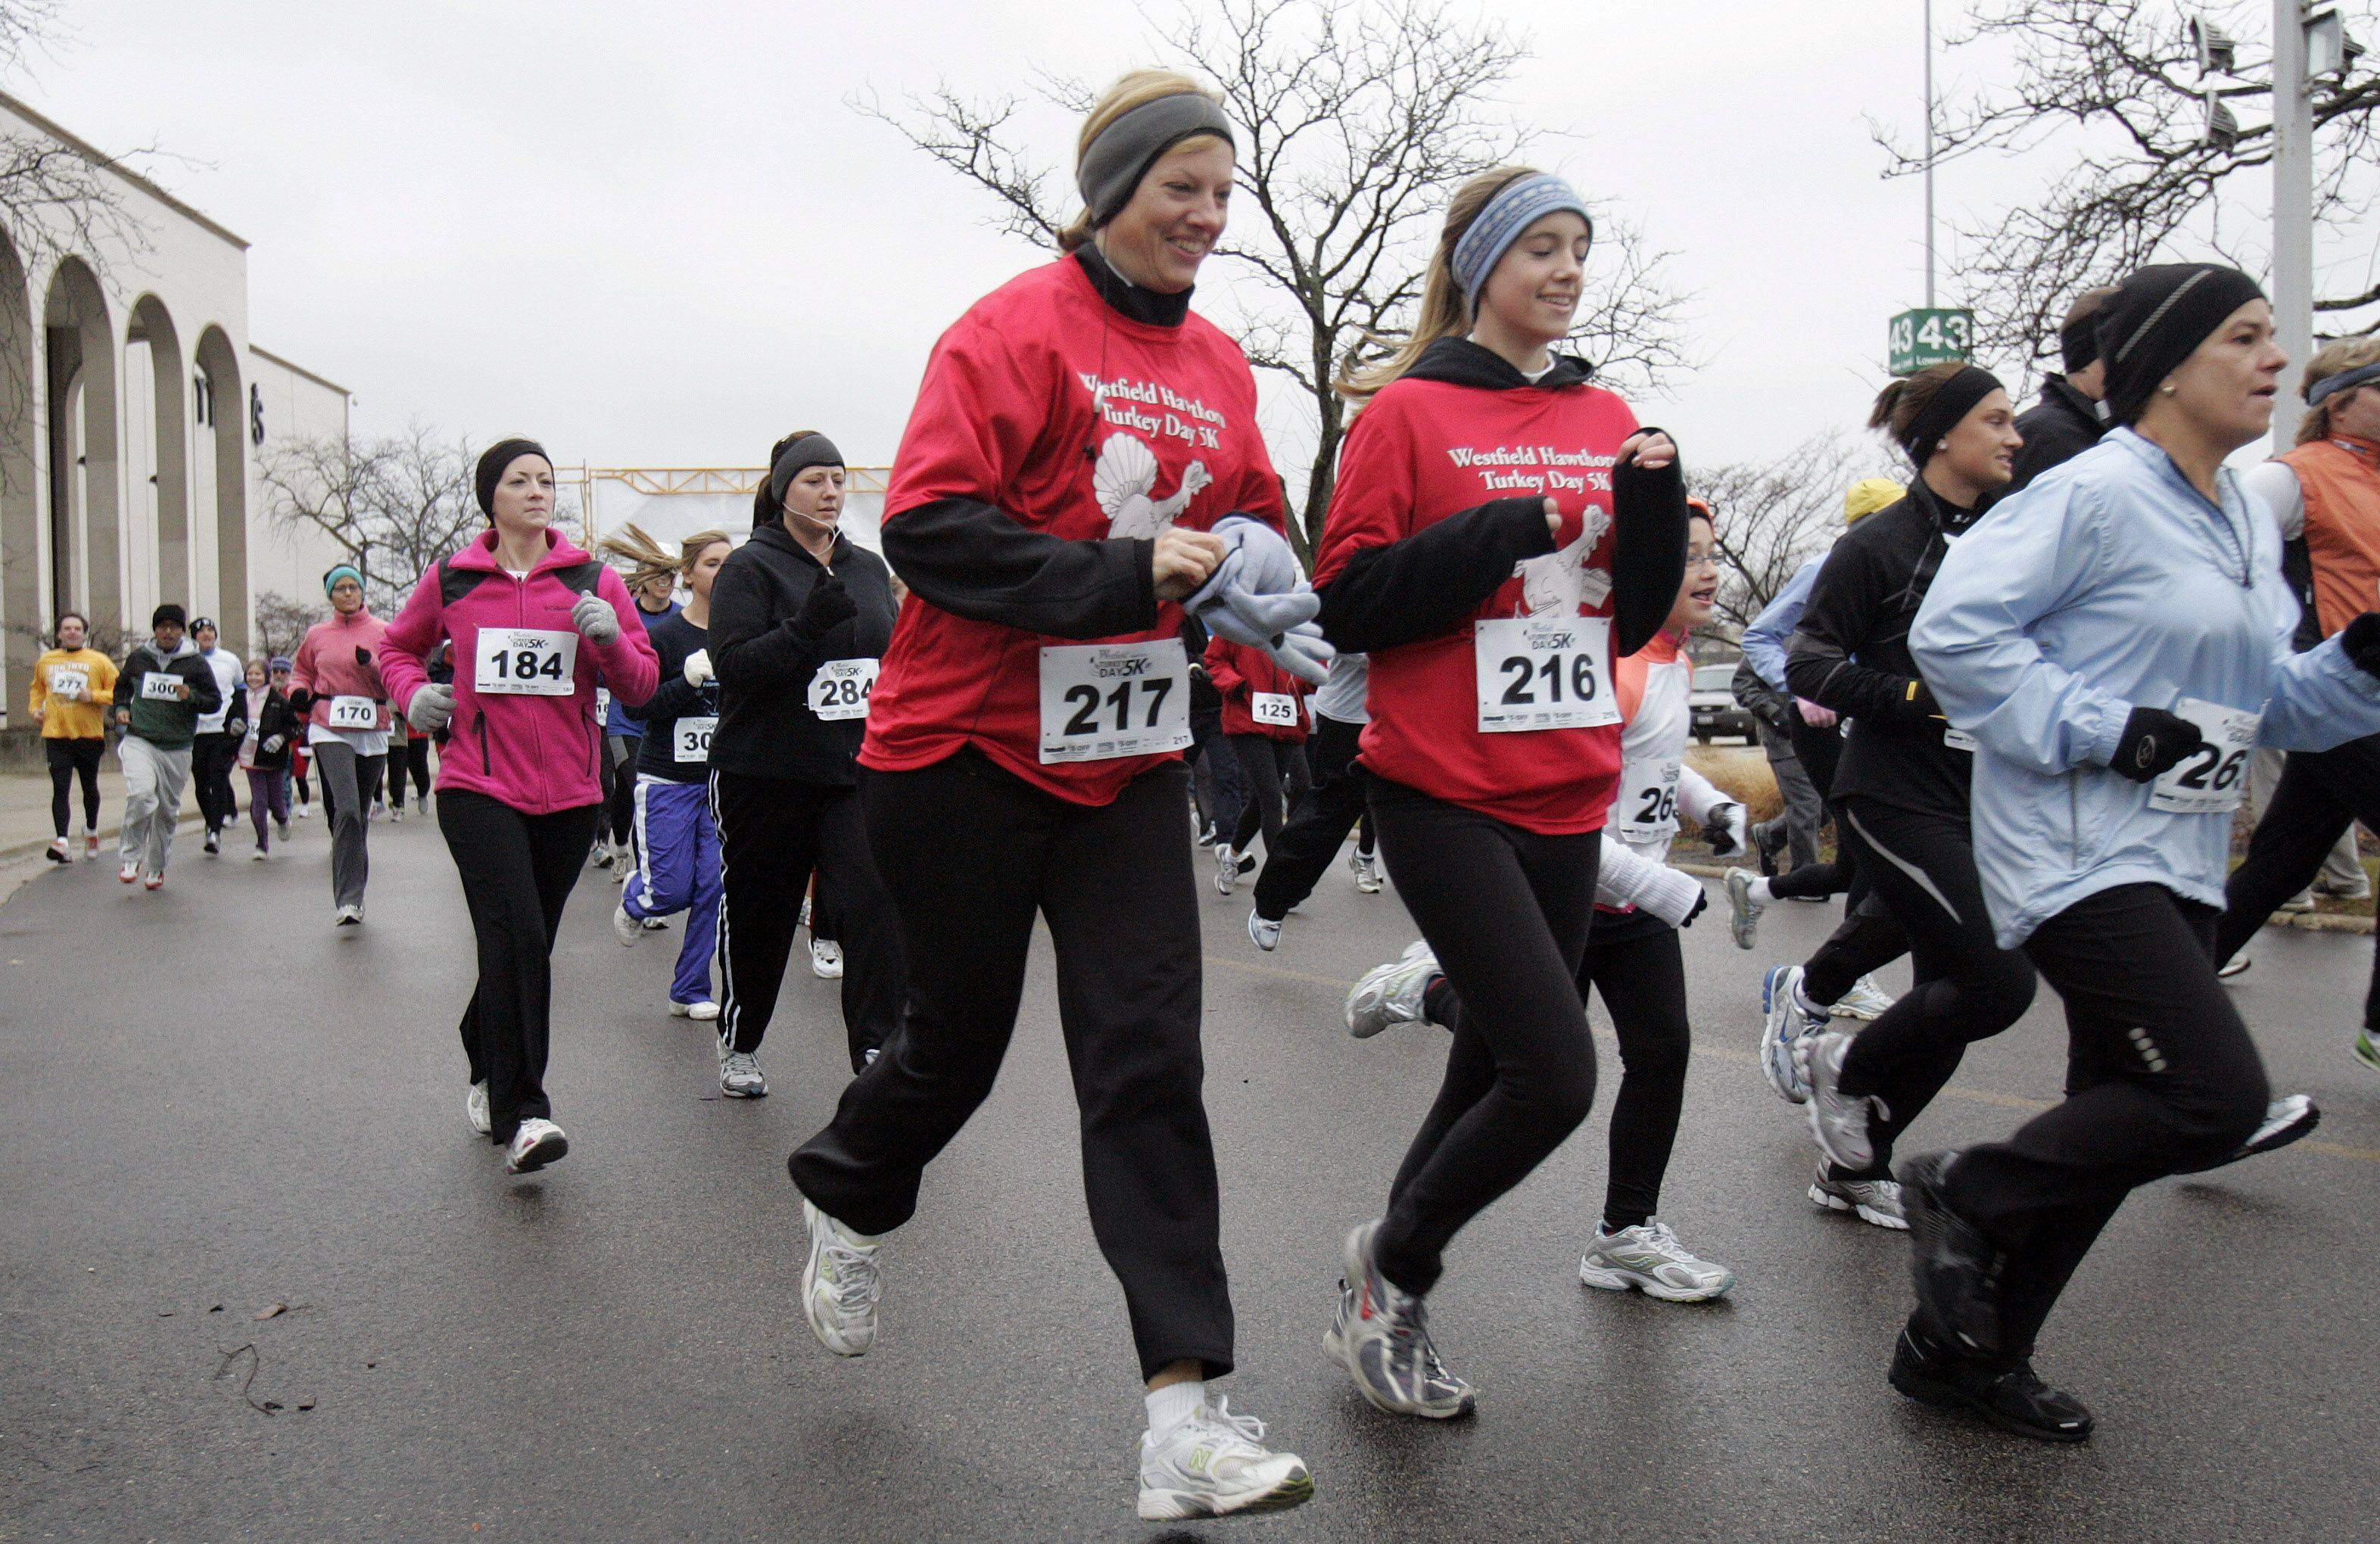 People participate in the 2n-Annual Westfield Hawthorn Turkey Day 5k at Wesfield Hawthorn Mall in Vernon Hills Thursday morning. A portion of the proceeds went to benefit Arden Shore Child & Family Services for Lake County children and families.